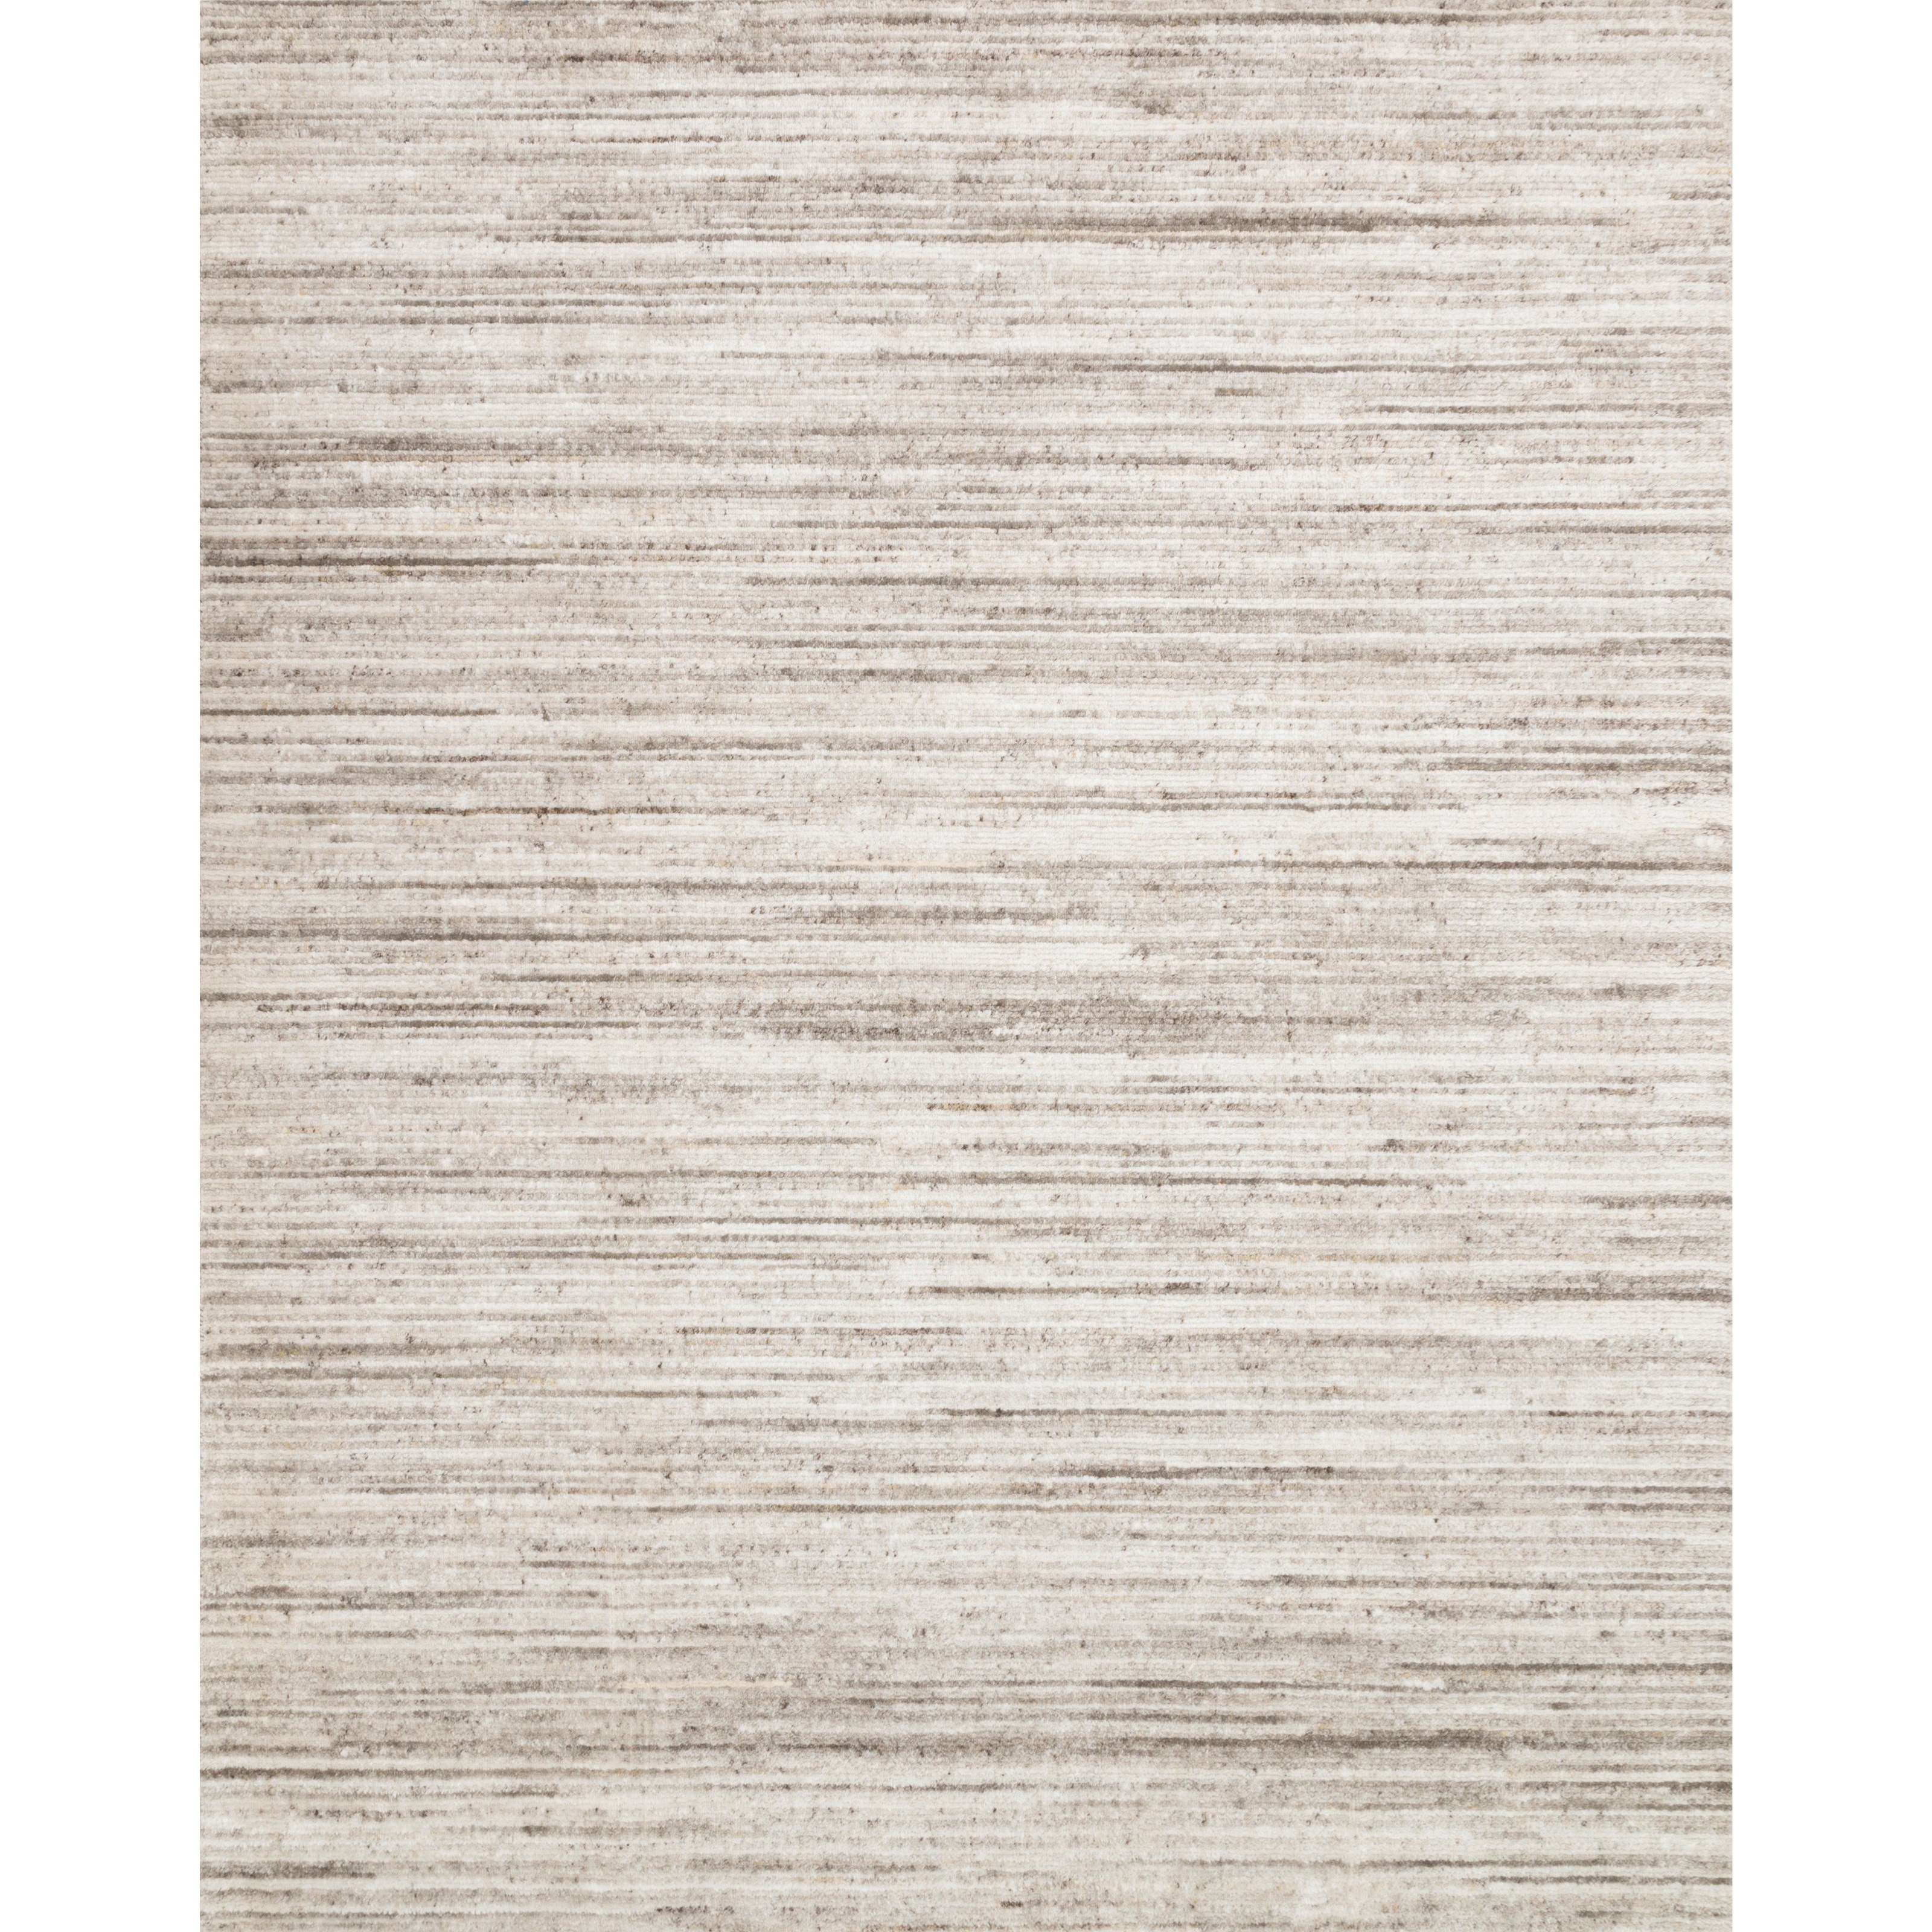 """Brandt 7'9"""" x 9'9"""" Ivory / Oatmeal Rug by Loloi Rugs at Virginia Furniture Market"""